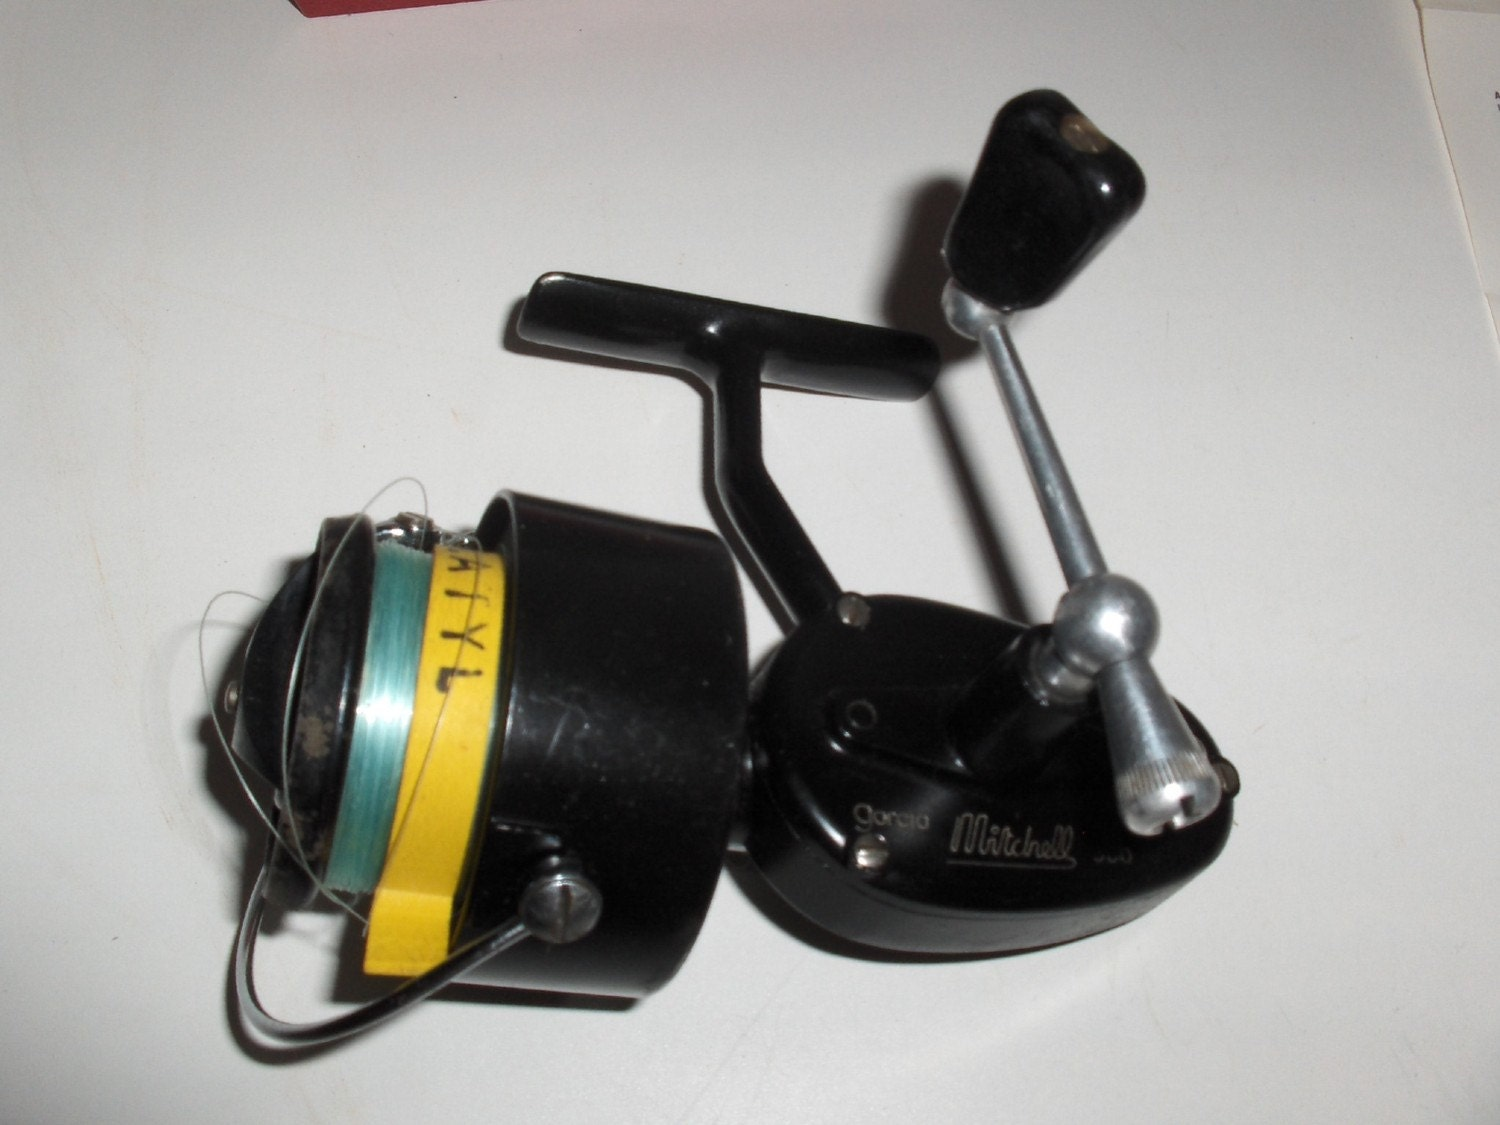 Vintage mitchell garcia 300 spinning reel by thetoolroom for Old mitchell fishing reels